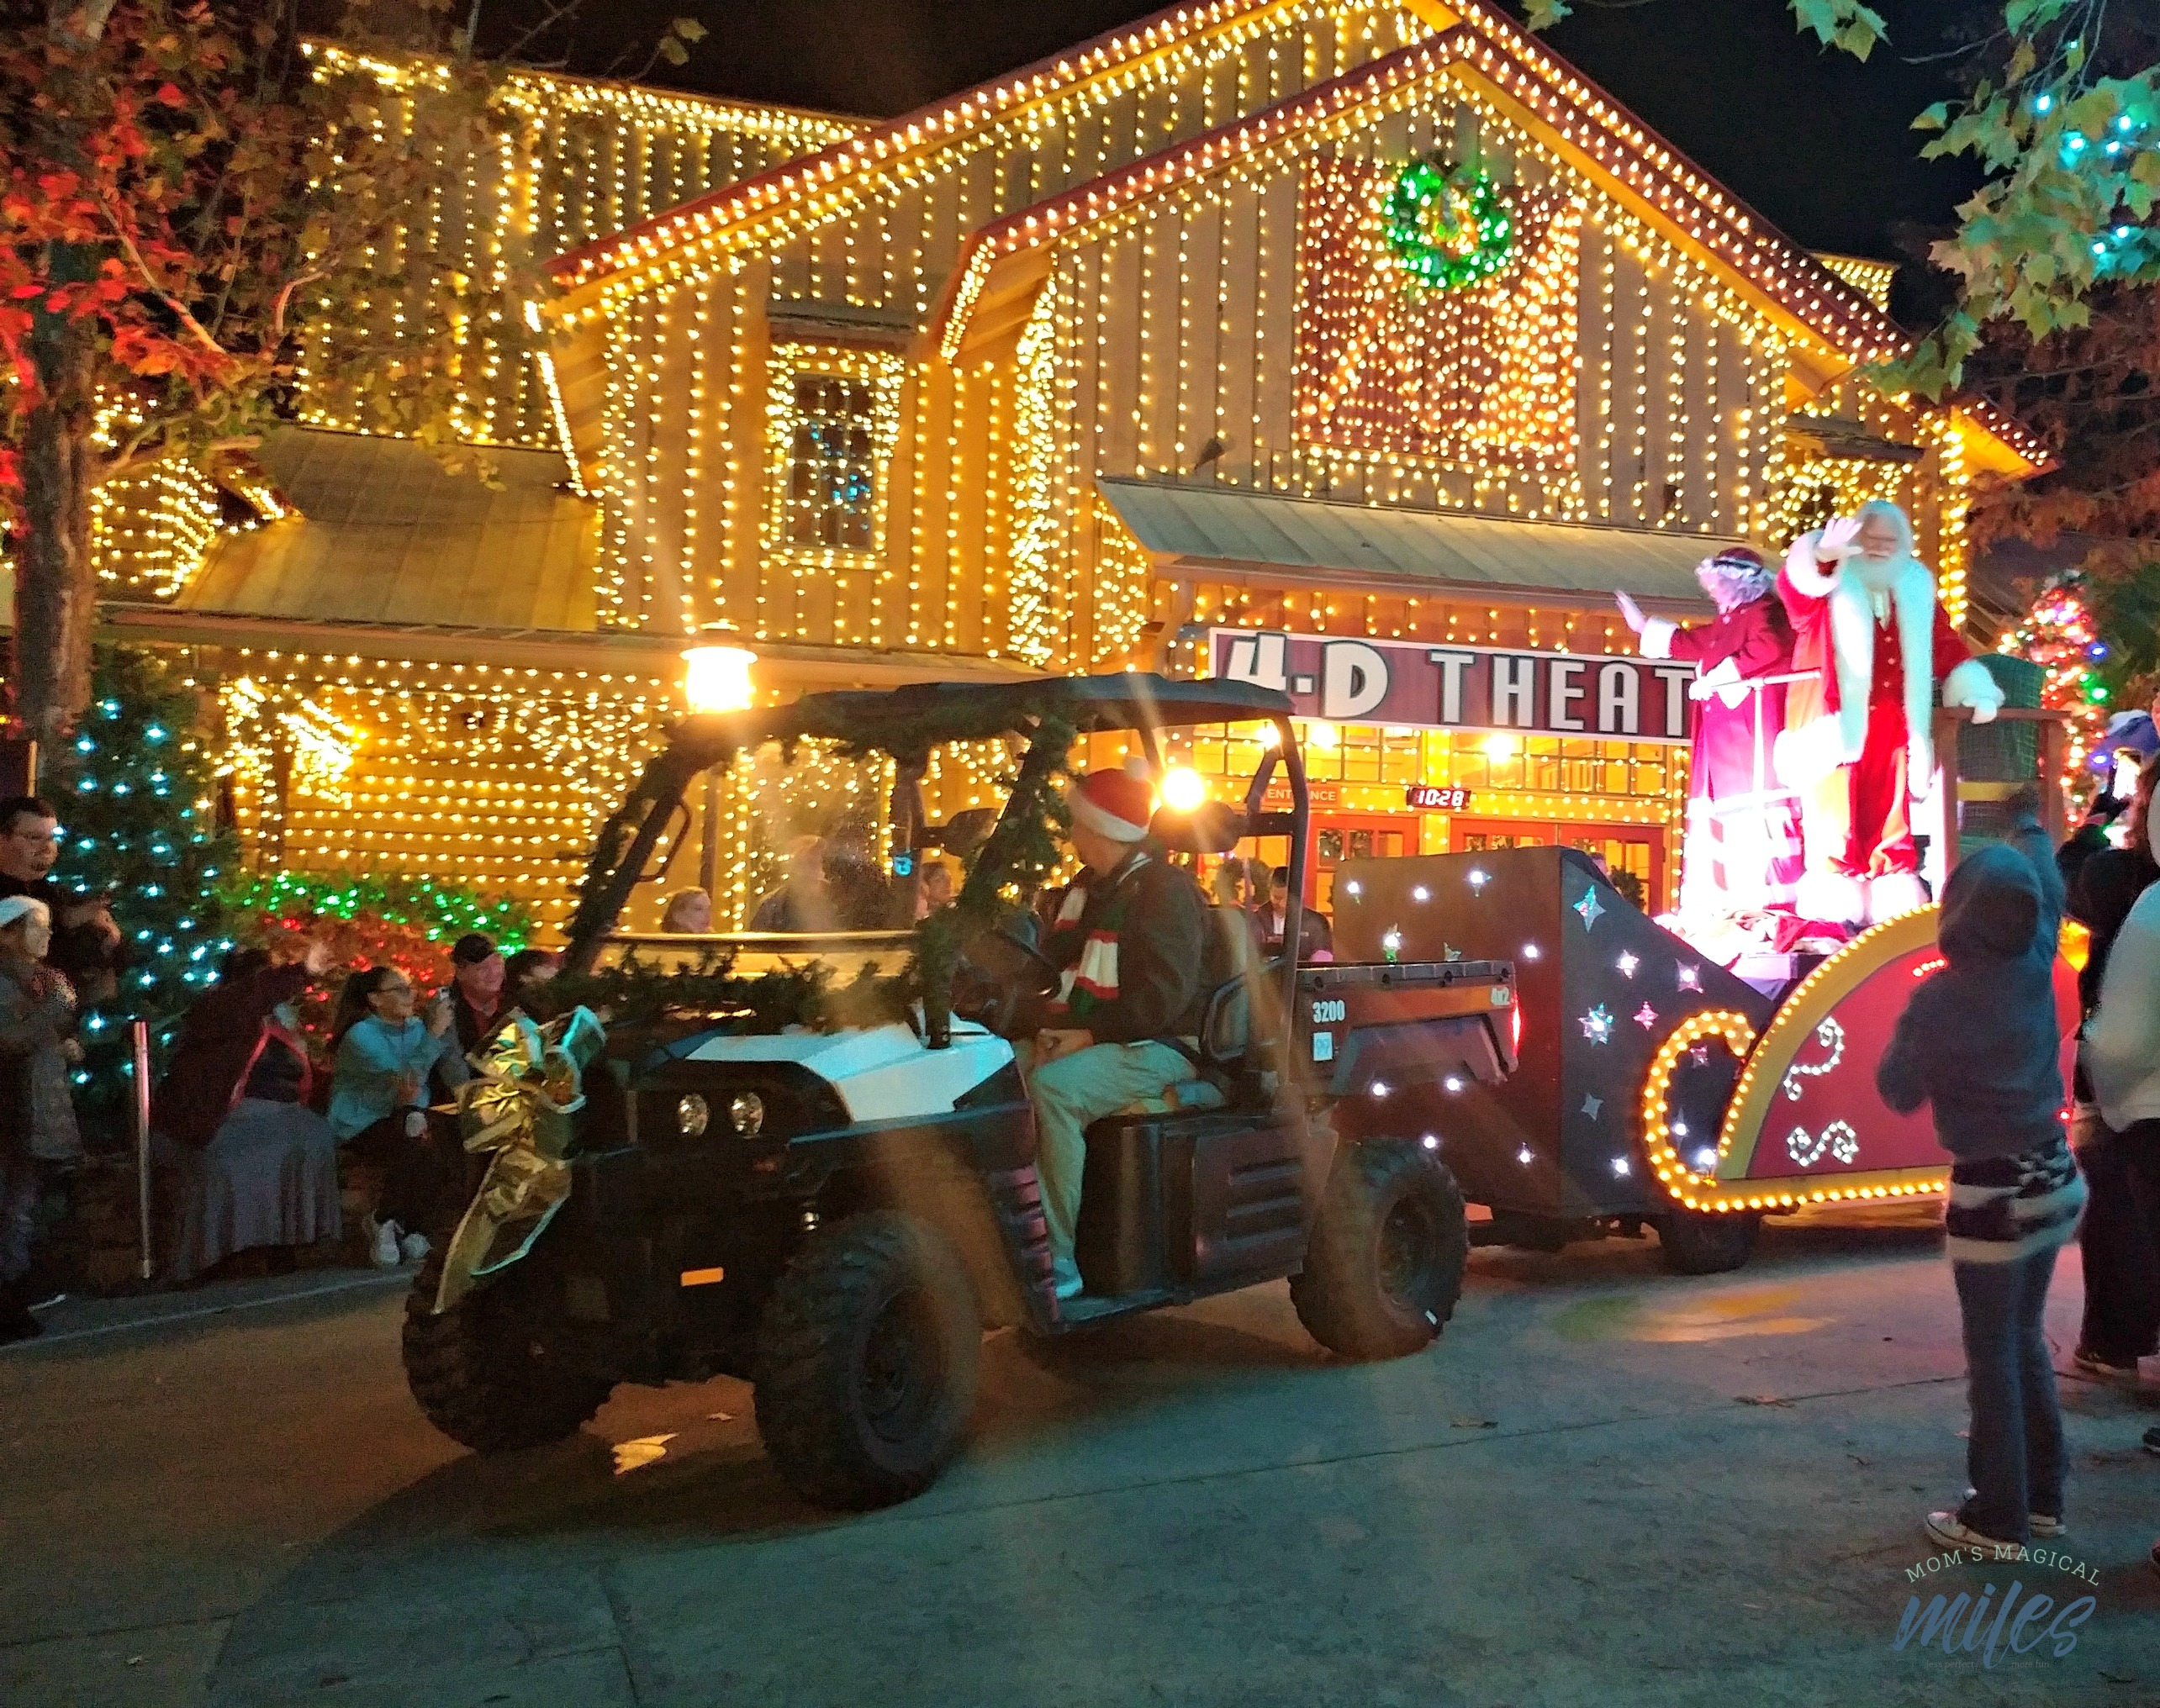 Families can wave hello to Santa and Mrs. Claus in the Stone Mountain Christmas parade!